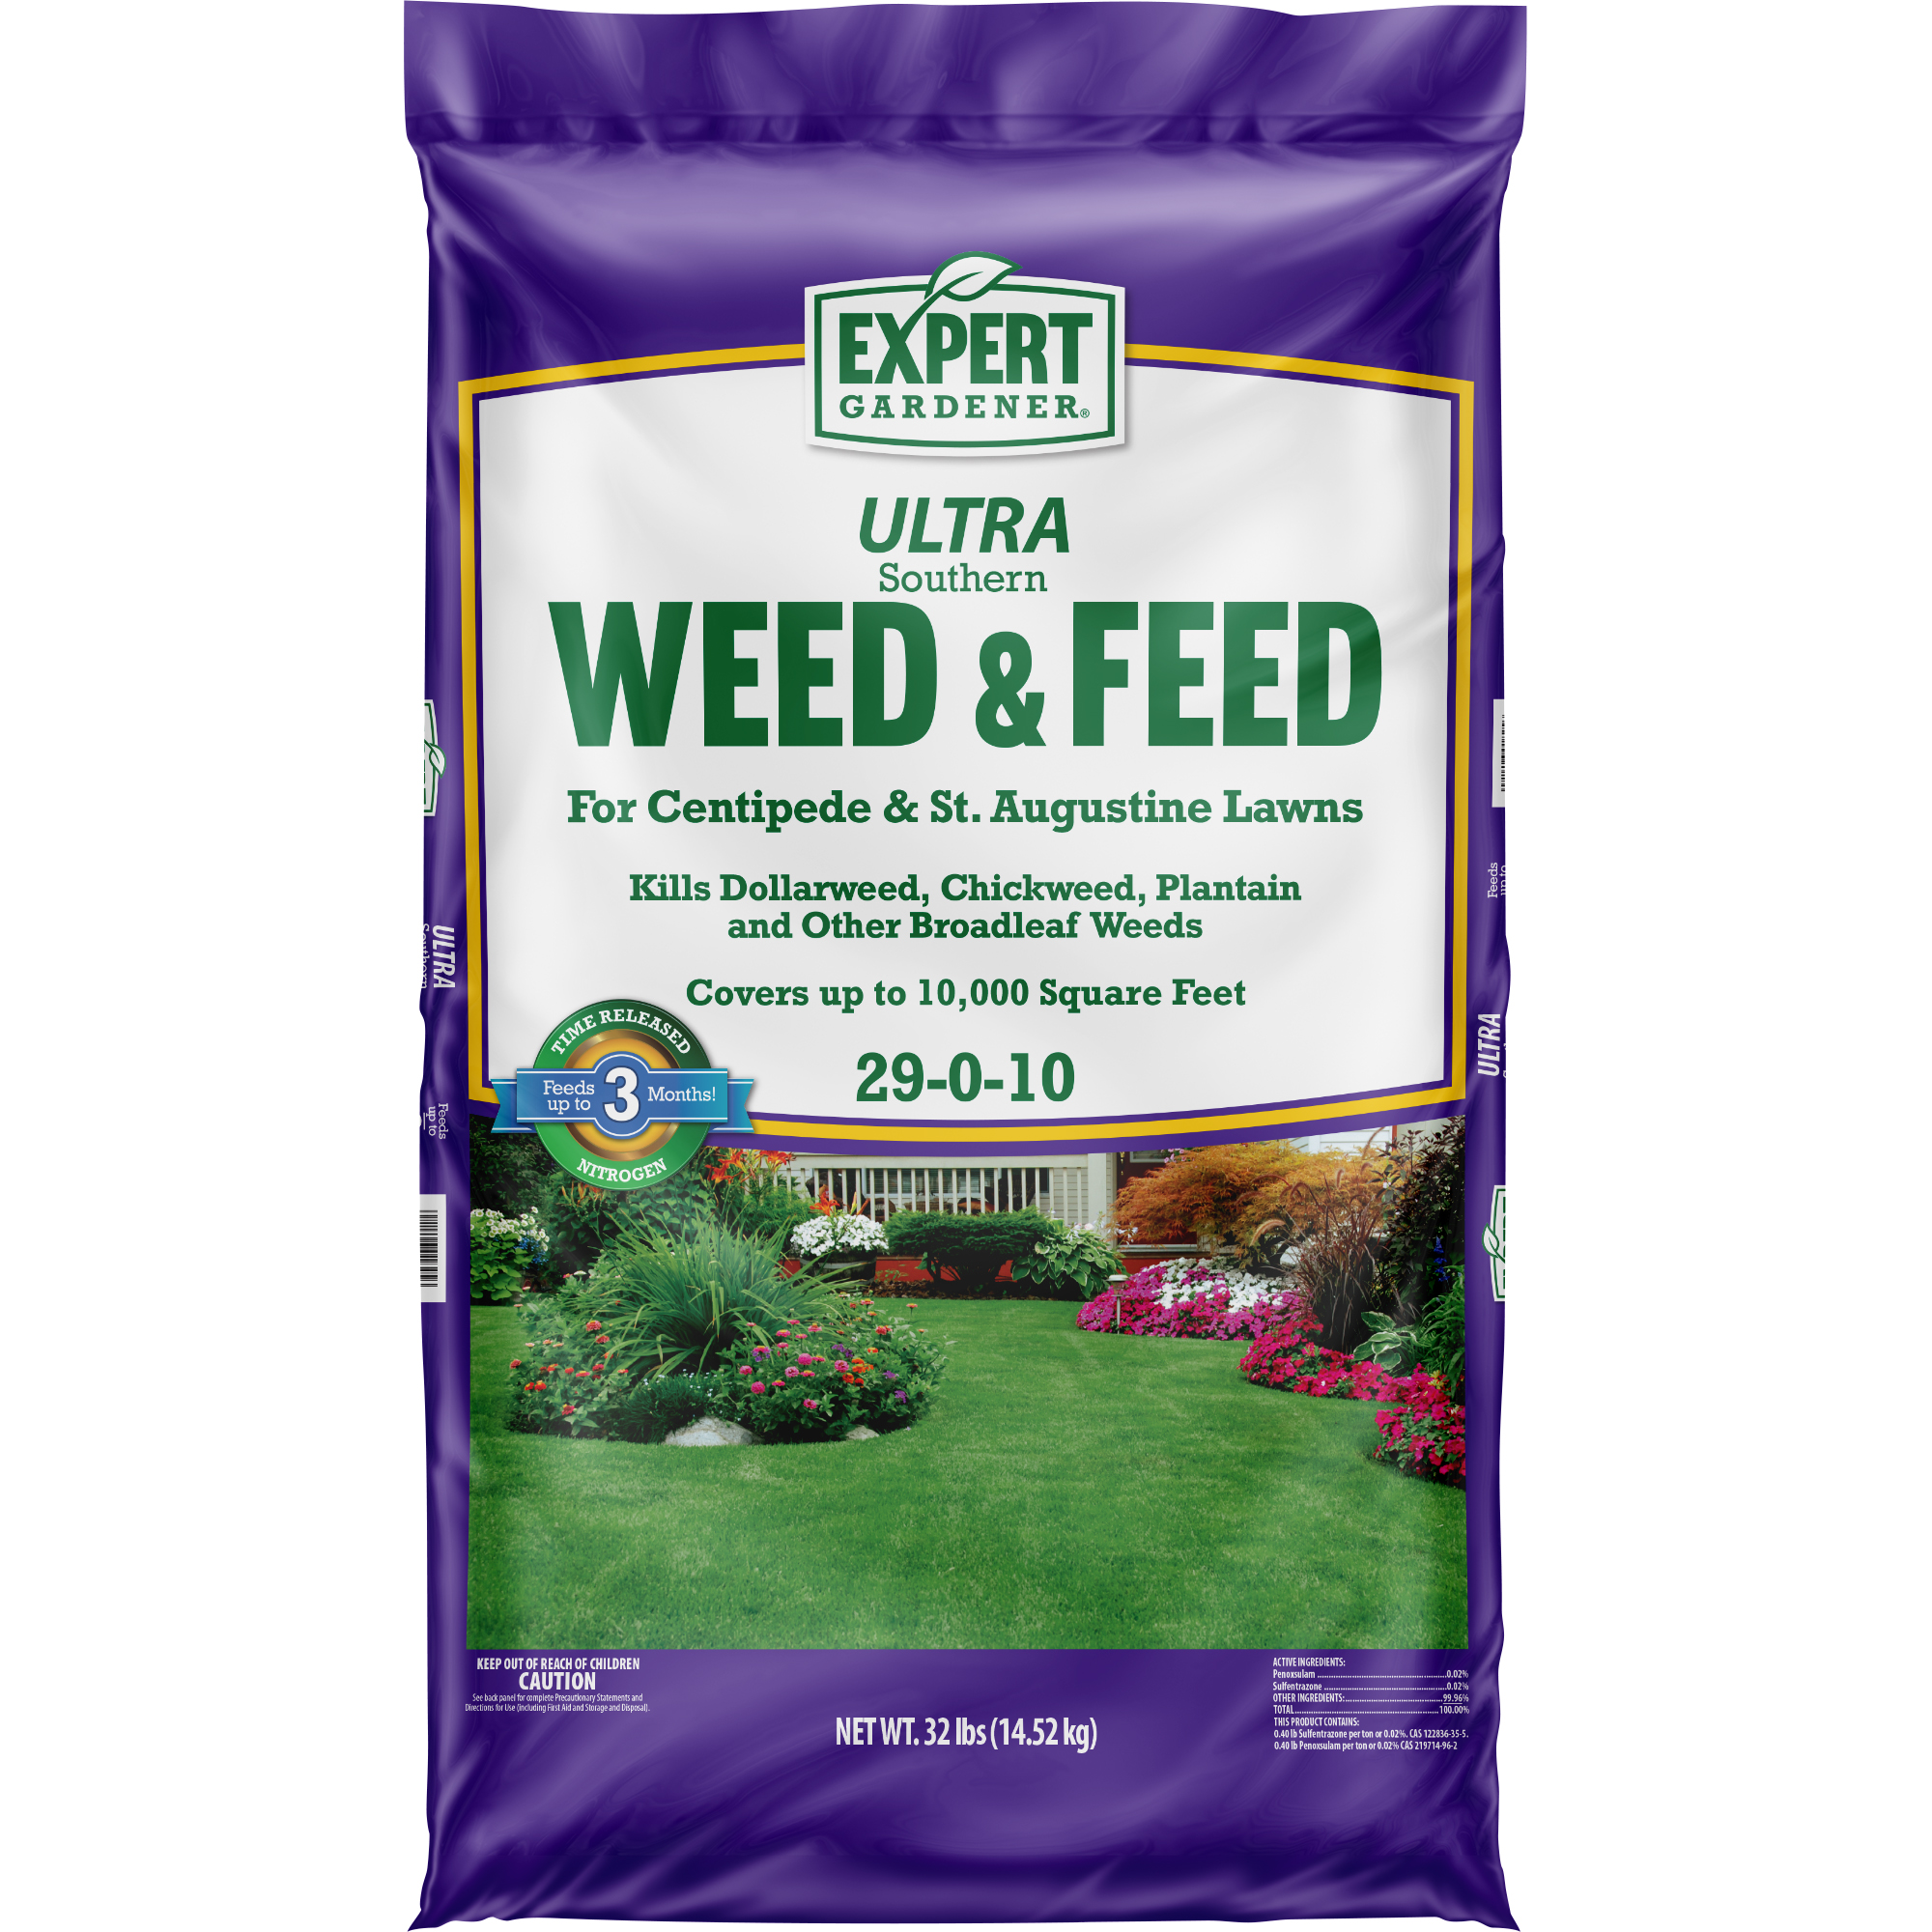 Expert Gardener ULTRA Southern Weed & Feed Lawn Fertilizer for Centipede & St. Augustine Lawns 29-0-10, 32 Pounds, Covers up to 10,000 Square Feet